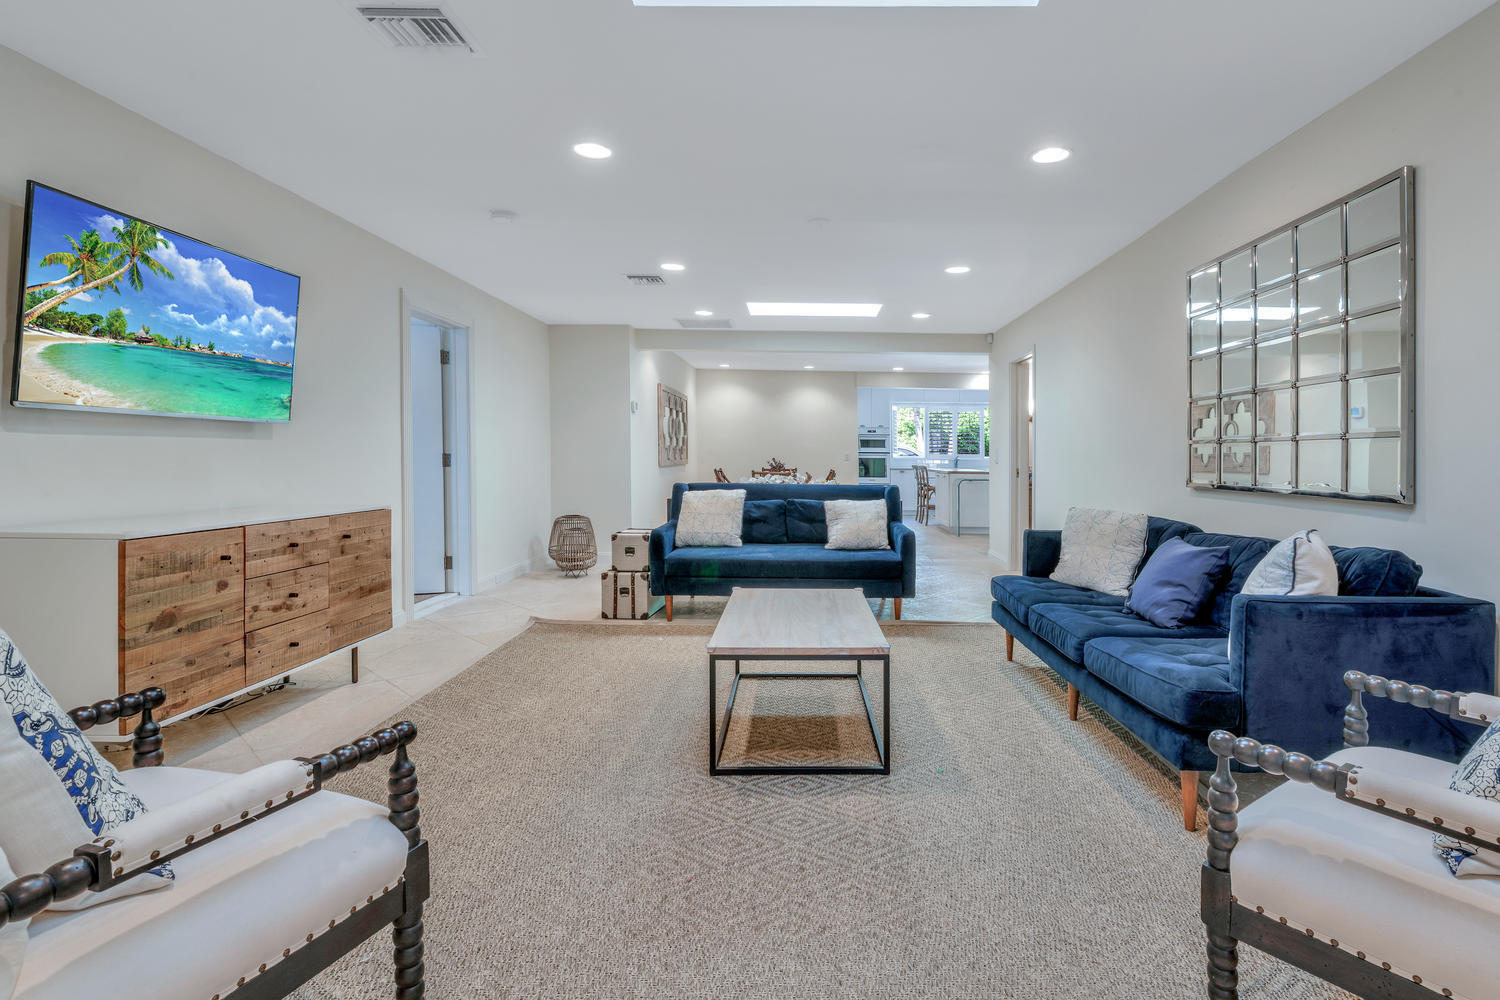 256 Mockingbird Trail, Palm Beach, Florida 33480, 3 Bedrooms Bedrooms, ,3 BathroomsBathrooms,Residential,for Sale,Mockingbird,RX-10480364, , , ,for Sale